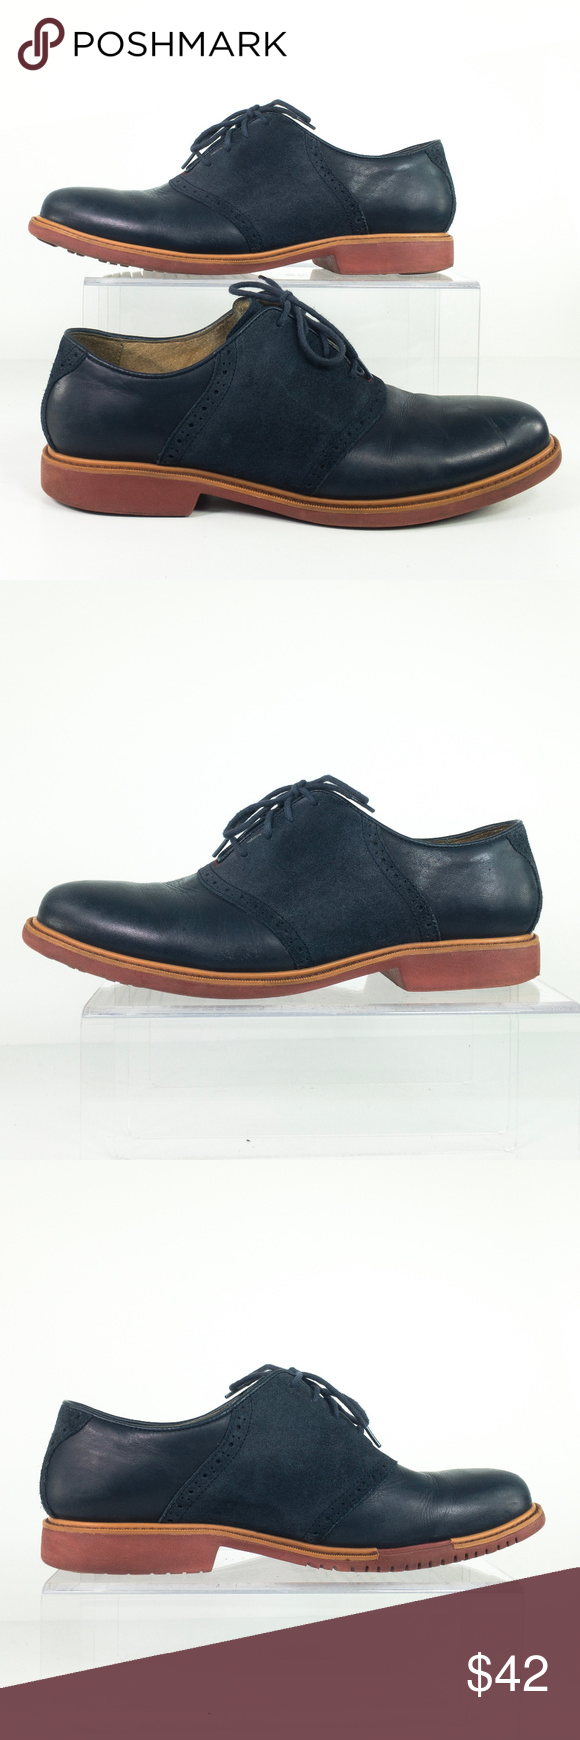 Cole Haan Oxford Grand OS Suede Leather